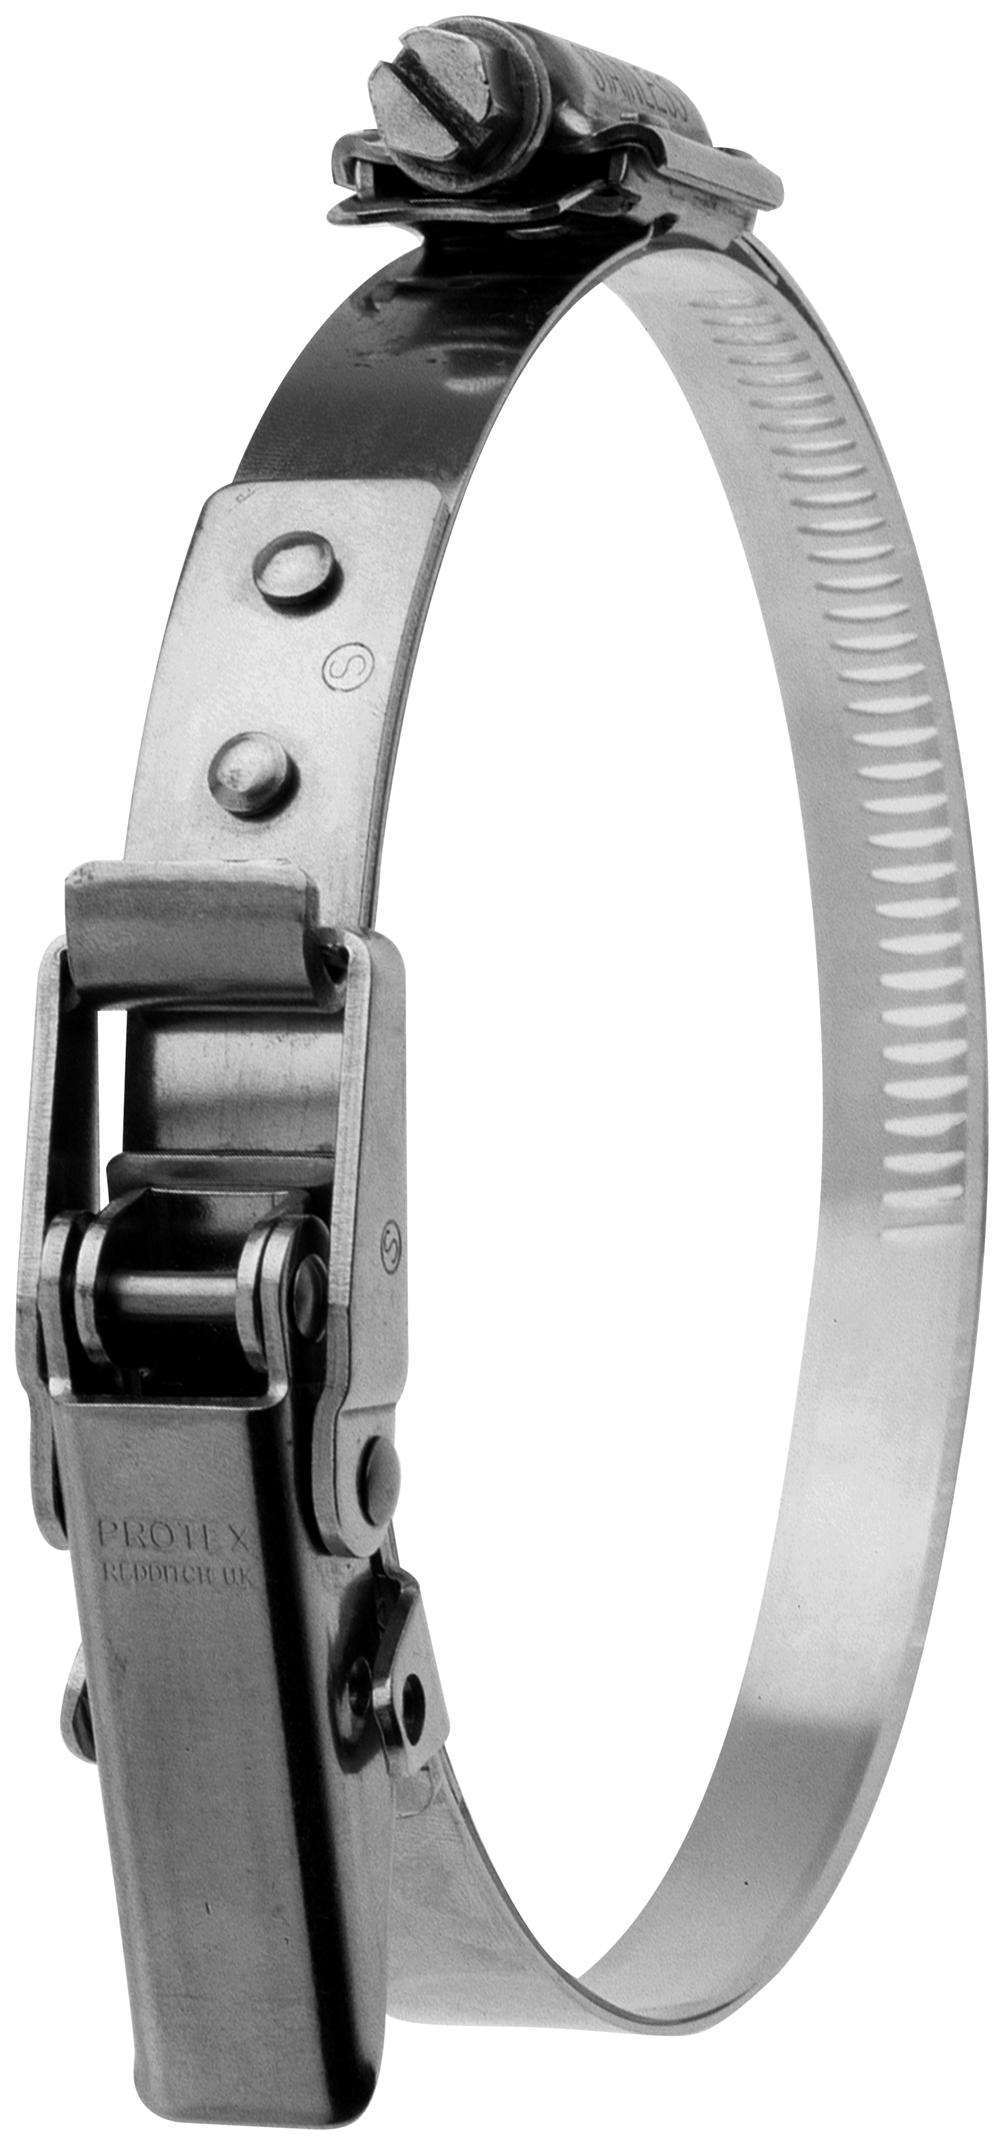 90-135mm Diameter Hi-Torque Rigid Claw Stainless Steel Quick Release Bandclamp (Natural)